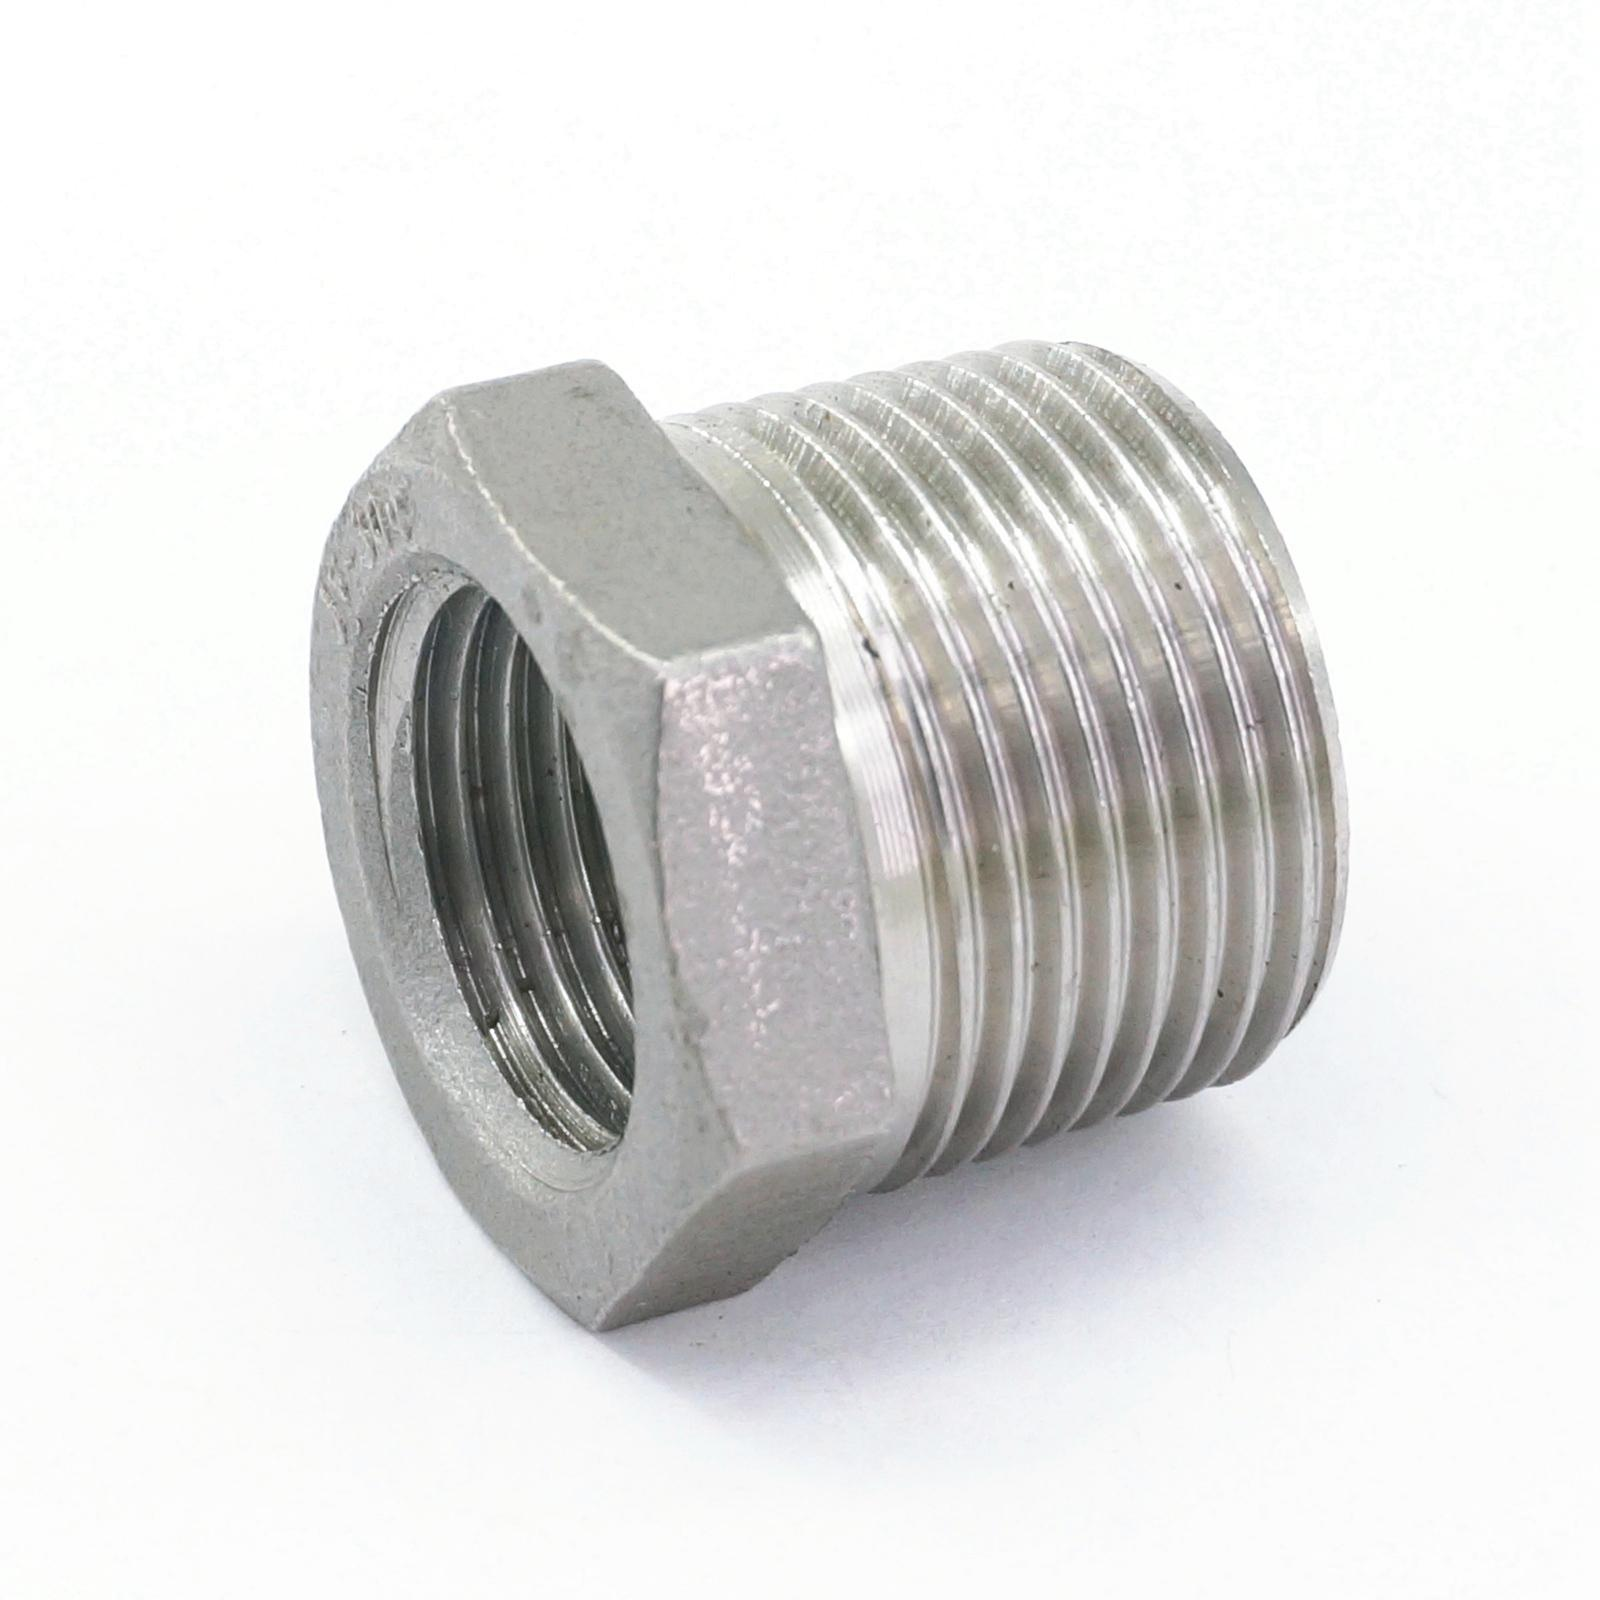 ᗜ Ljഃ stainless steel reducer bsp male thread to